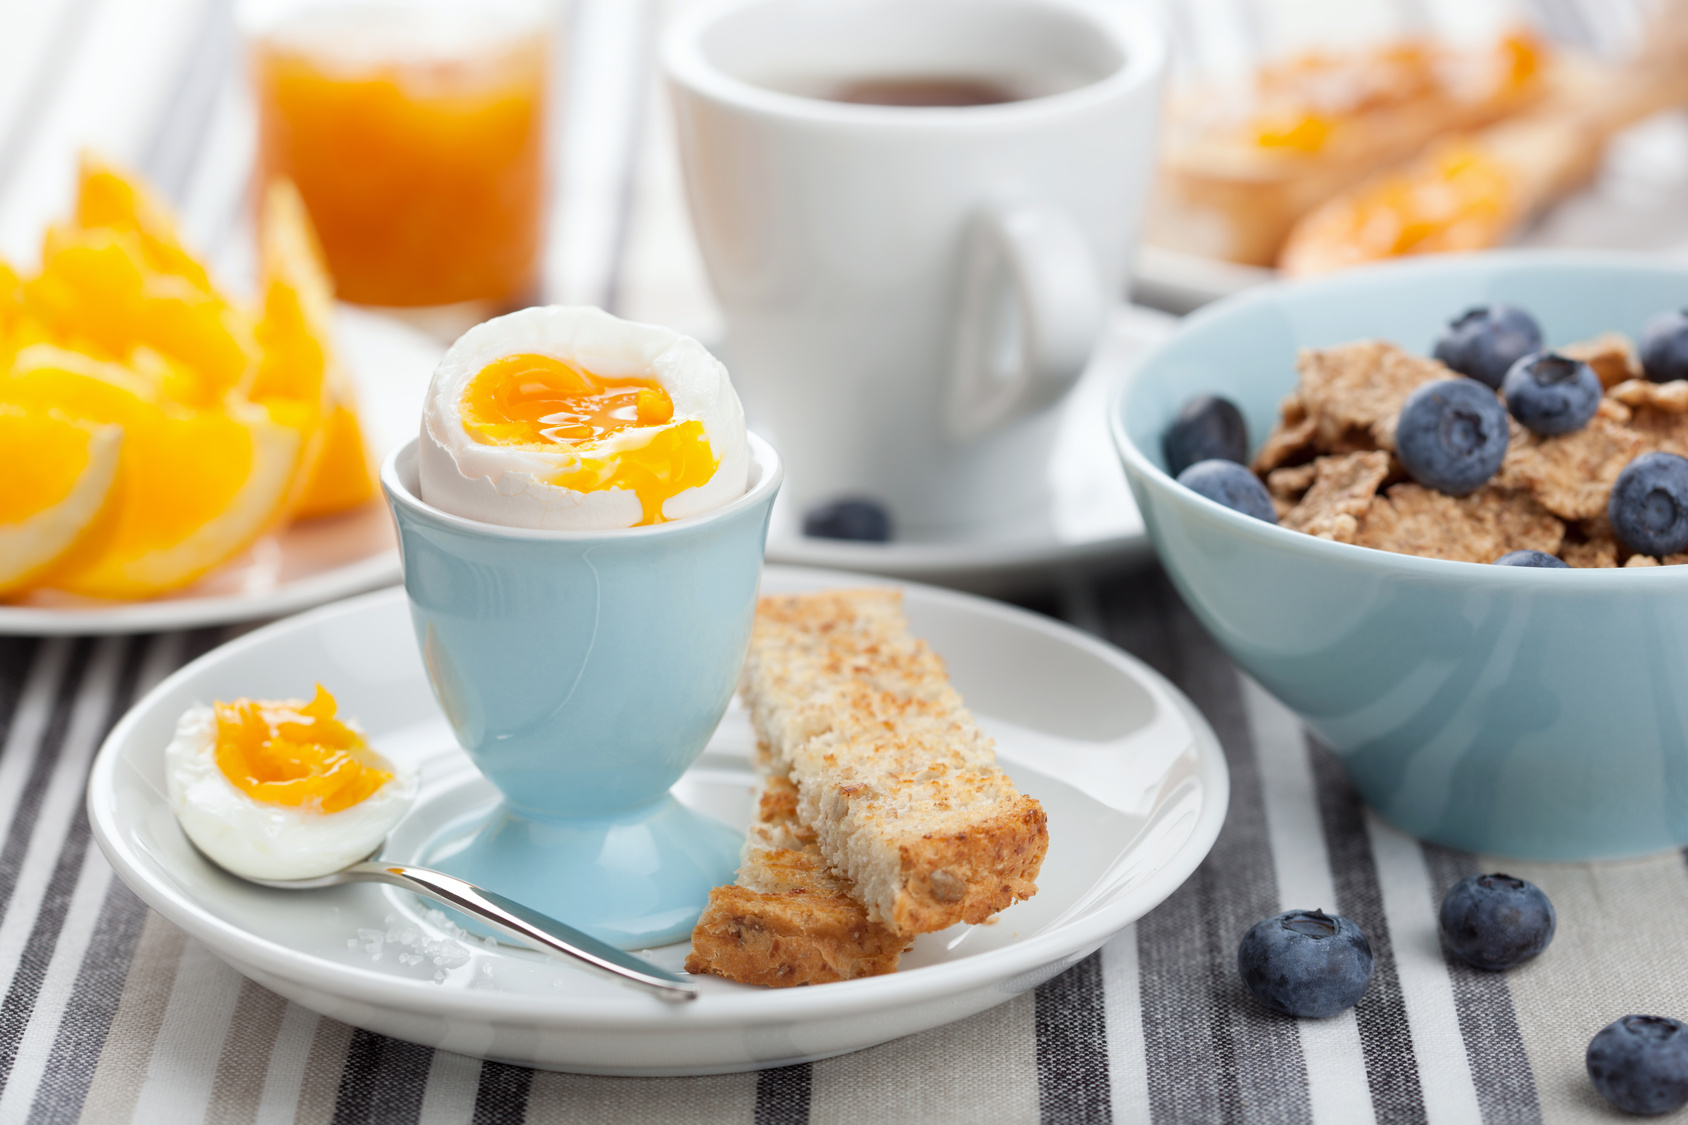 soft boiled egg in an egg cup with toast, coffee, and oranges